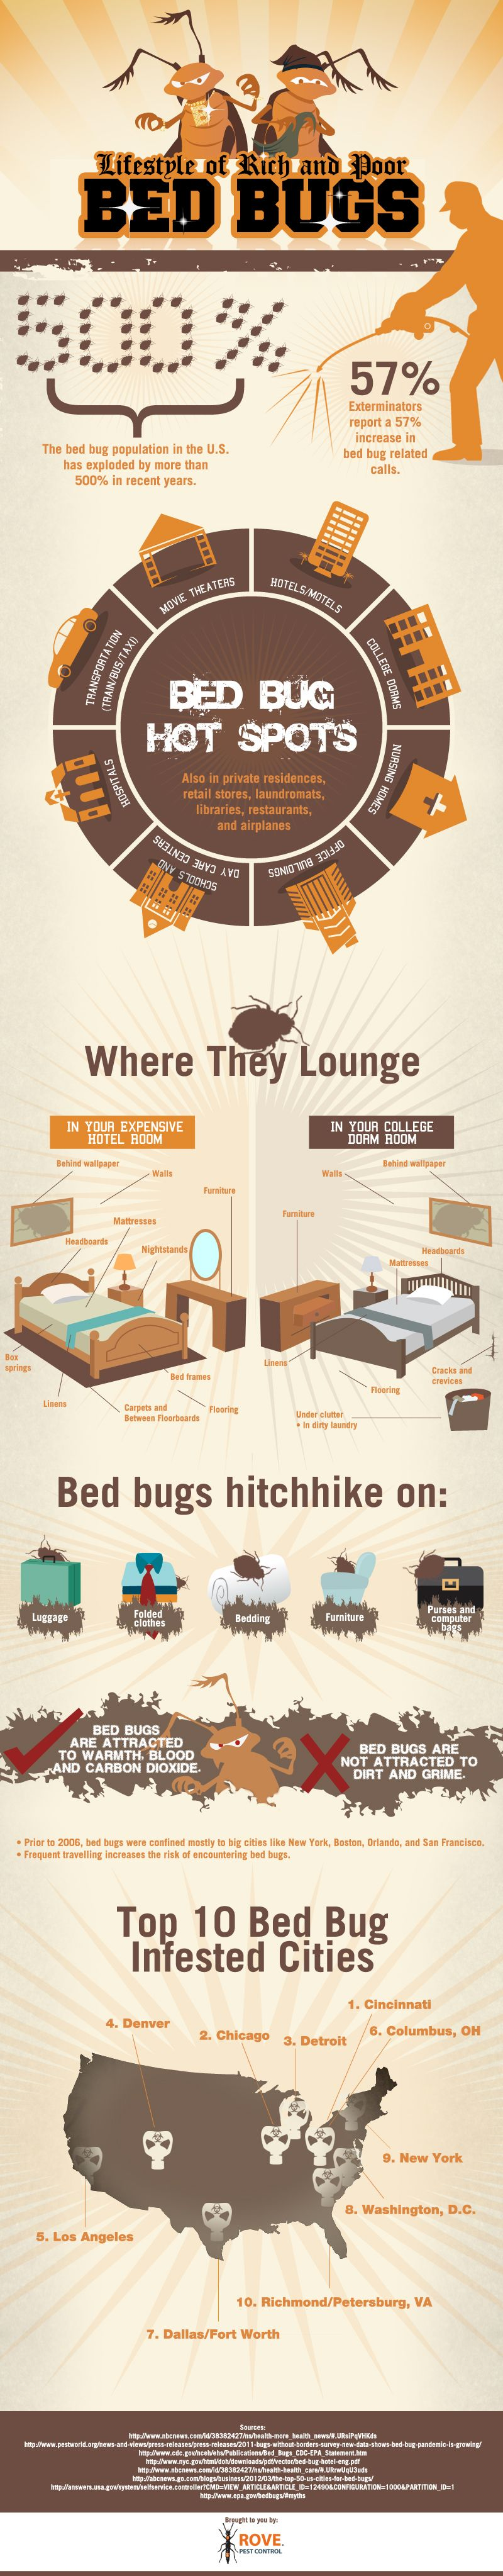 Lifestyle of Rich and Poor Bed Bugs Blog Bed bugs, Bed